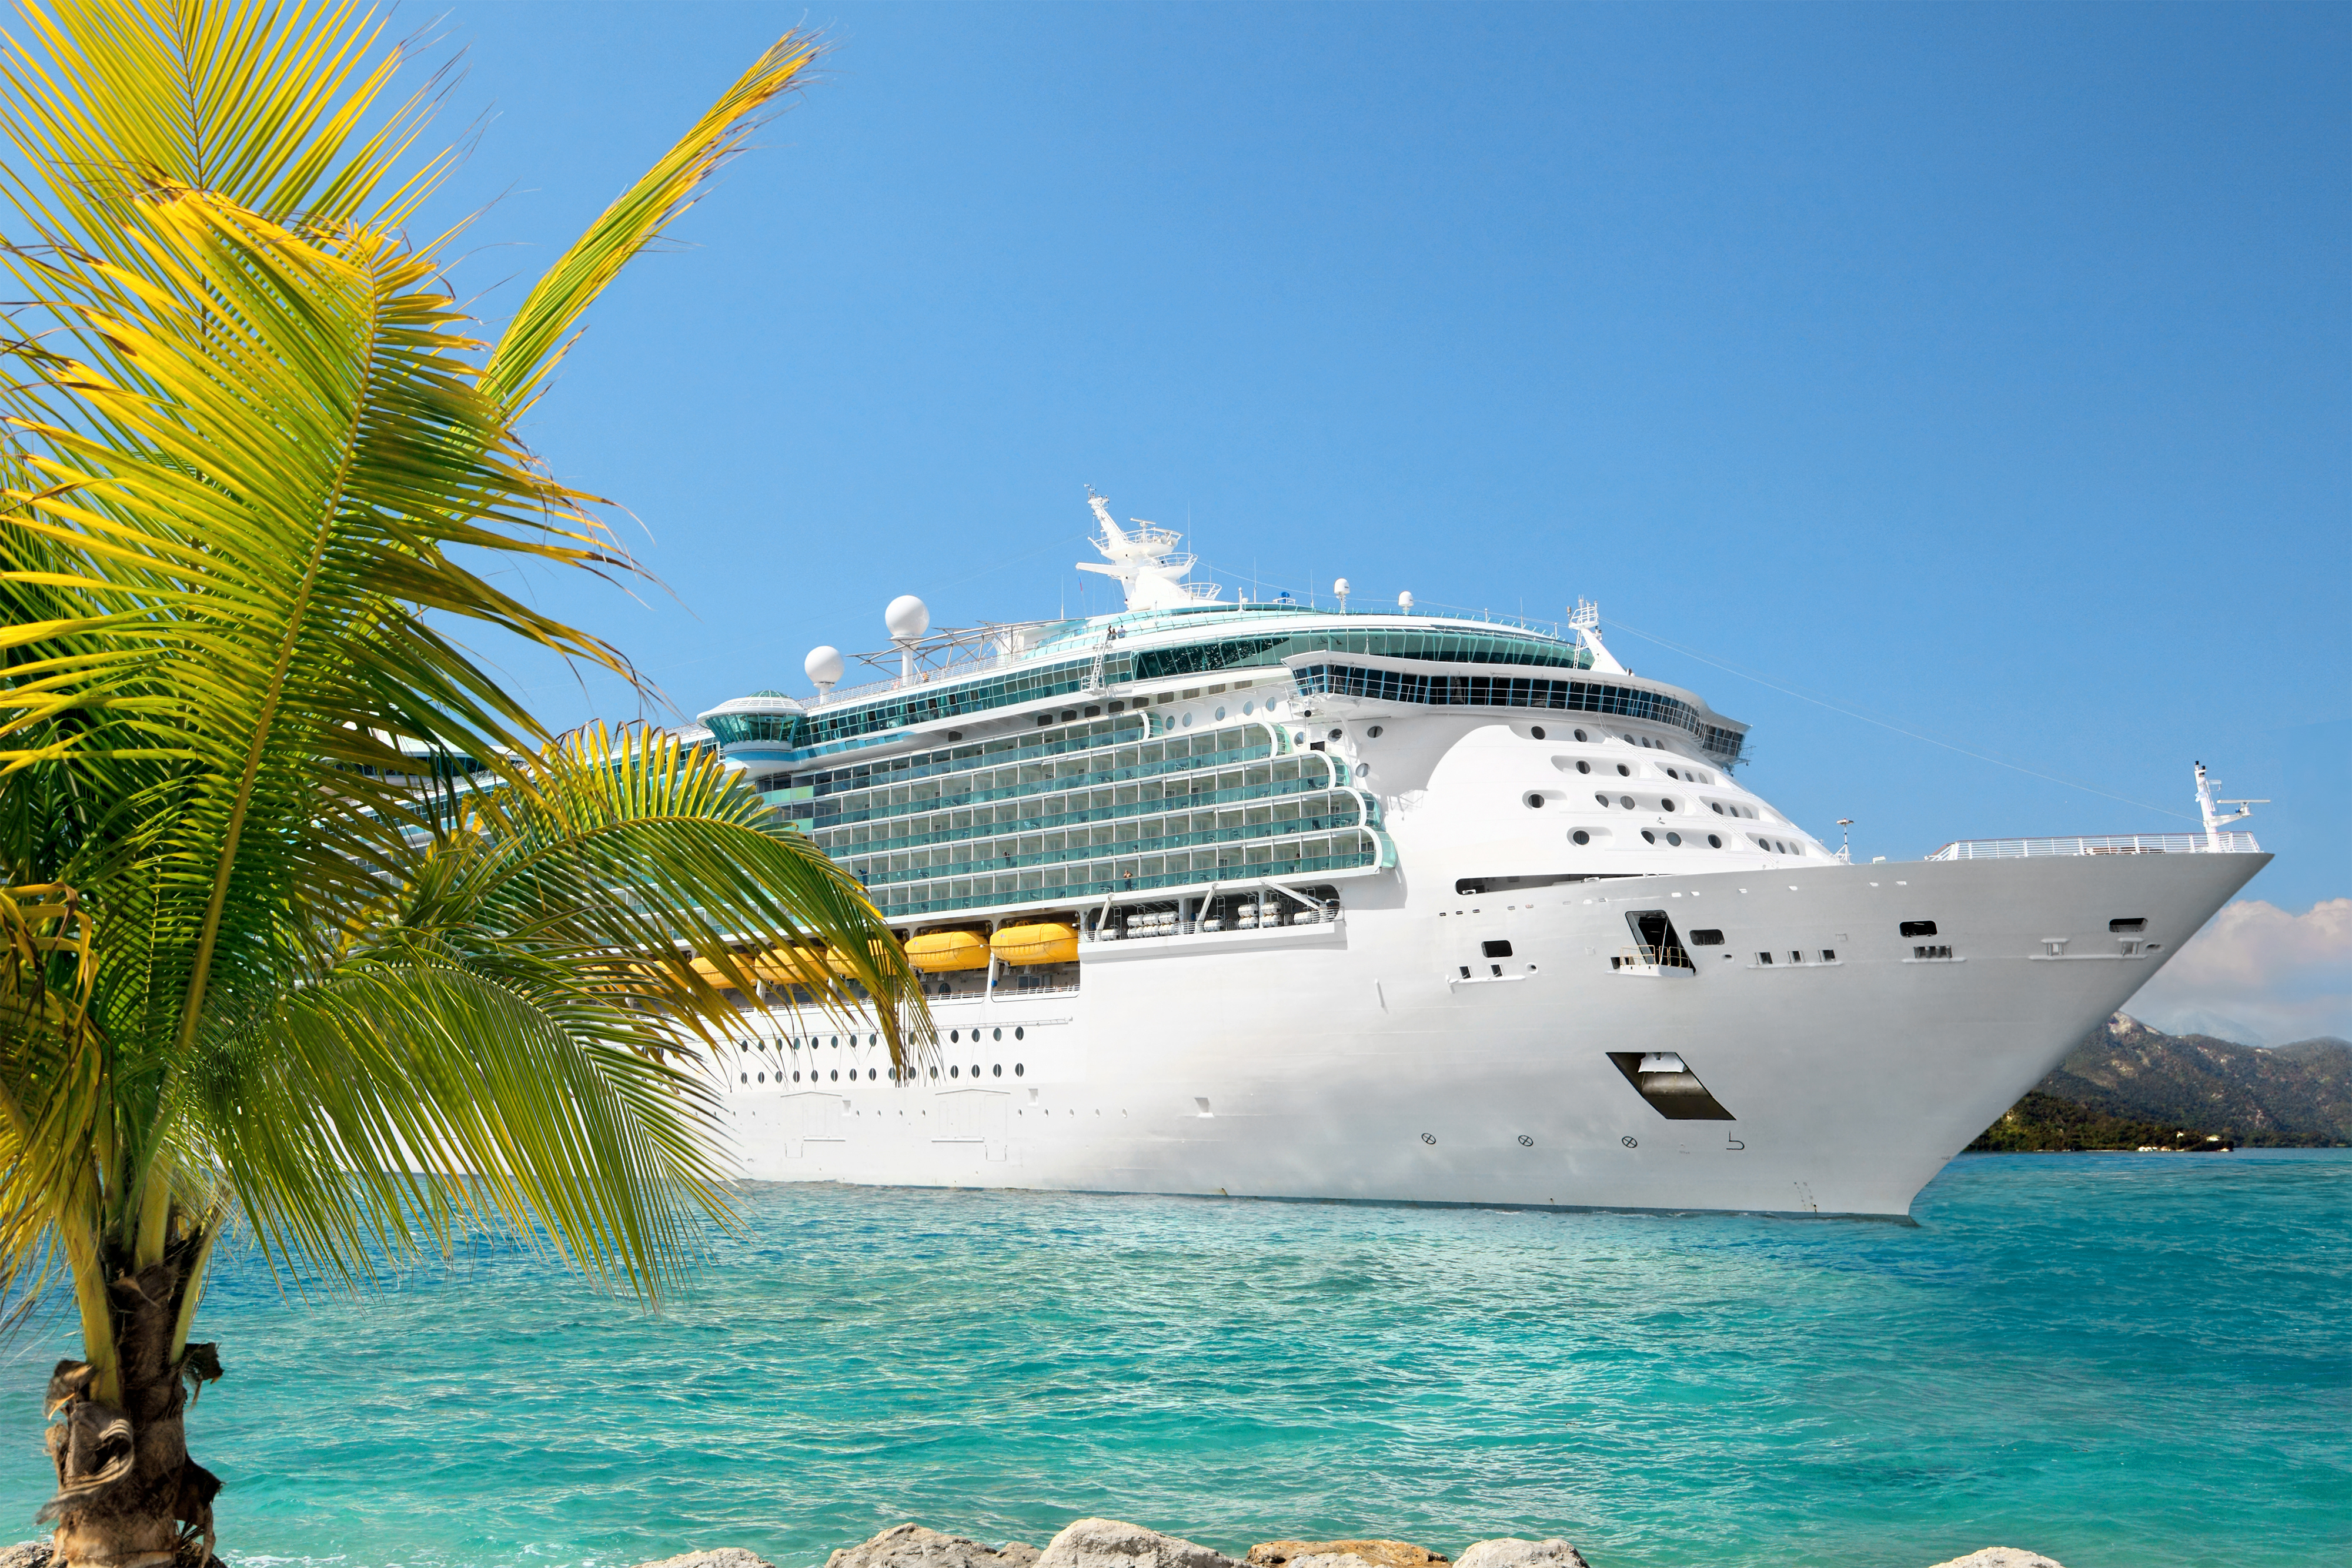 Summer Cruise Ship Background - High-quality And Transparent